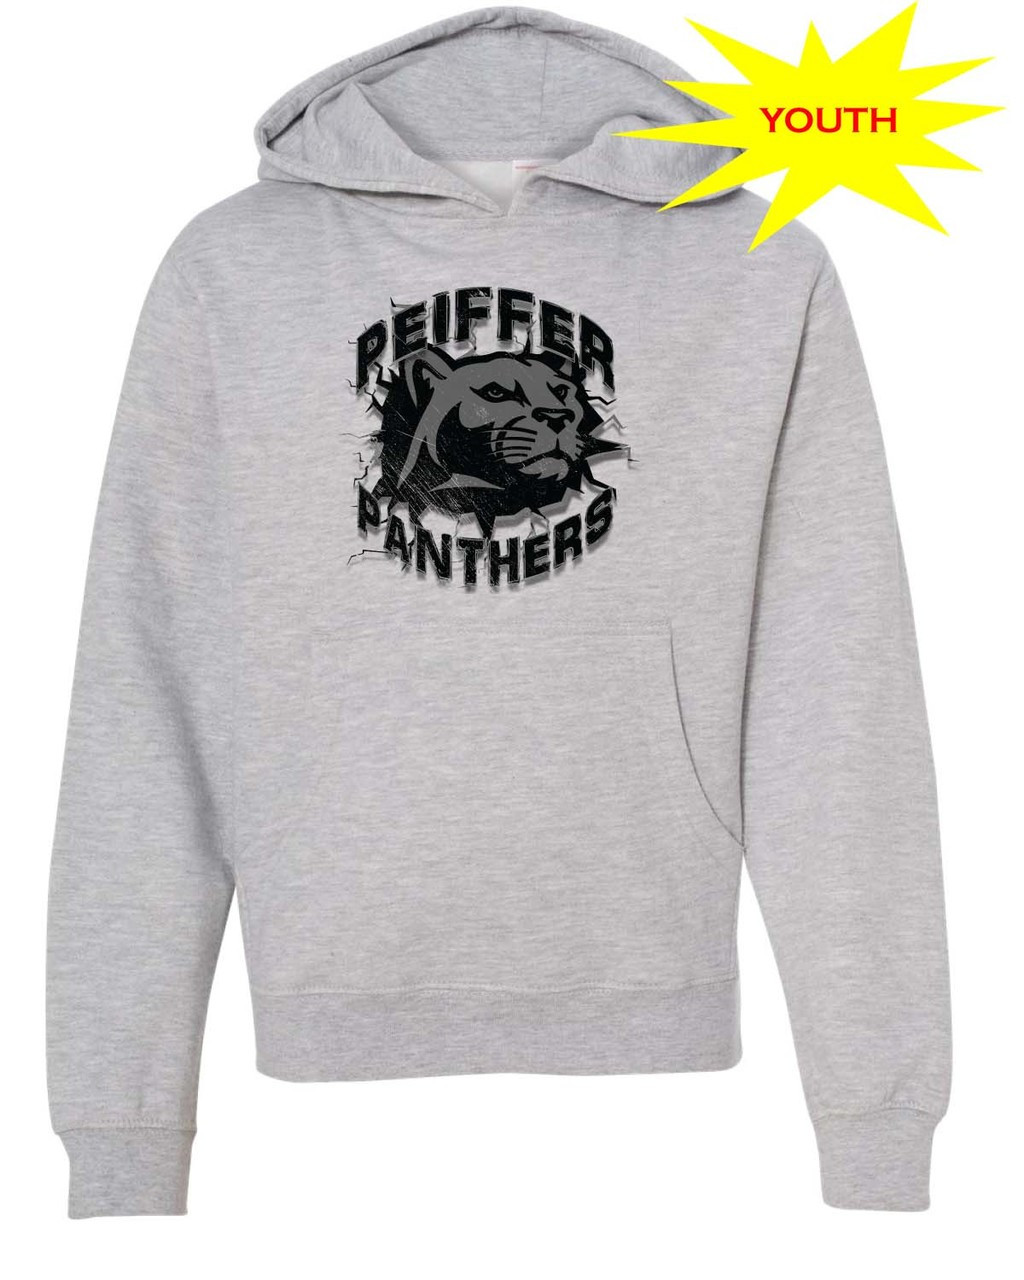 buy online 9b9ff 89f03 Peiffer Panthers Youth Hoodie